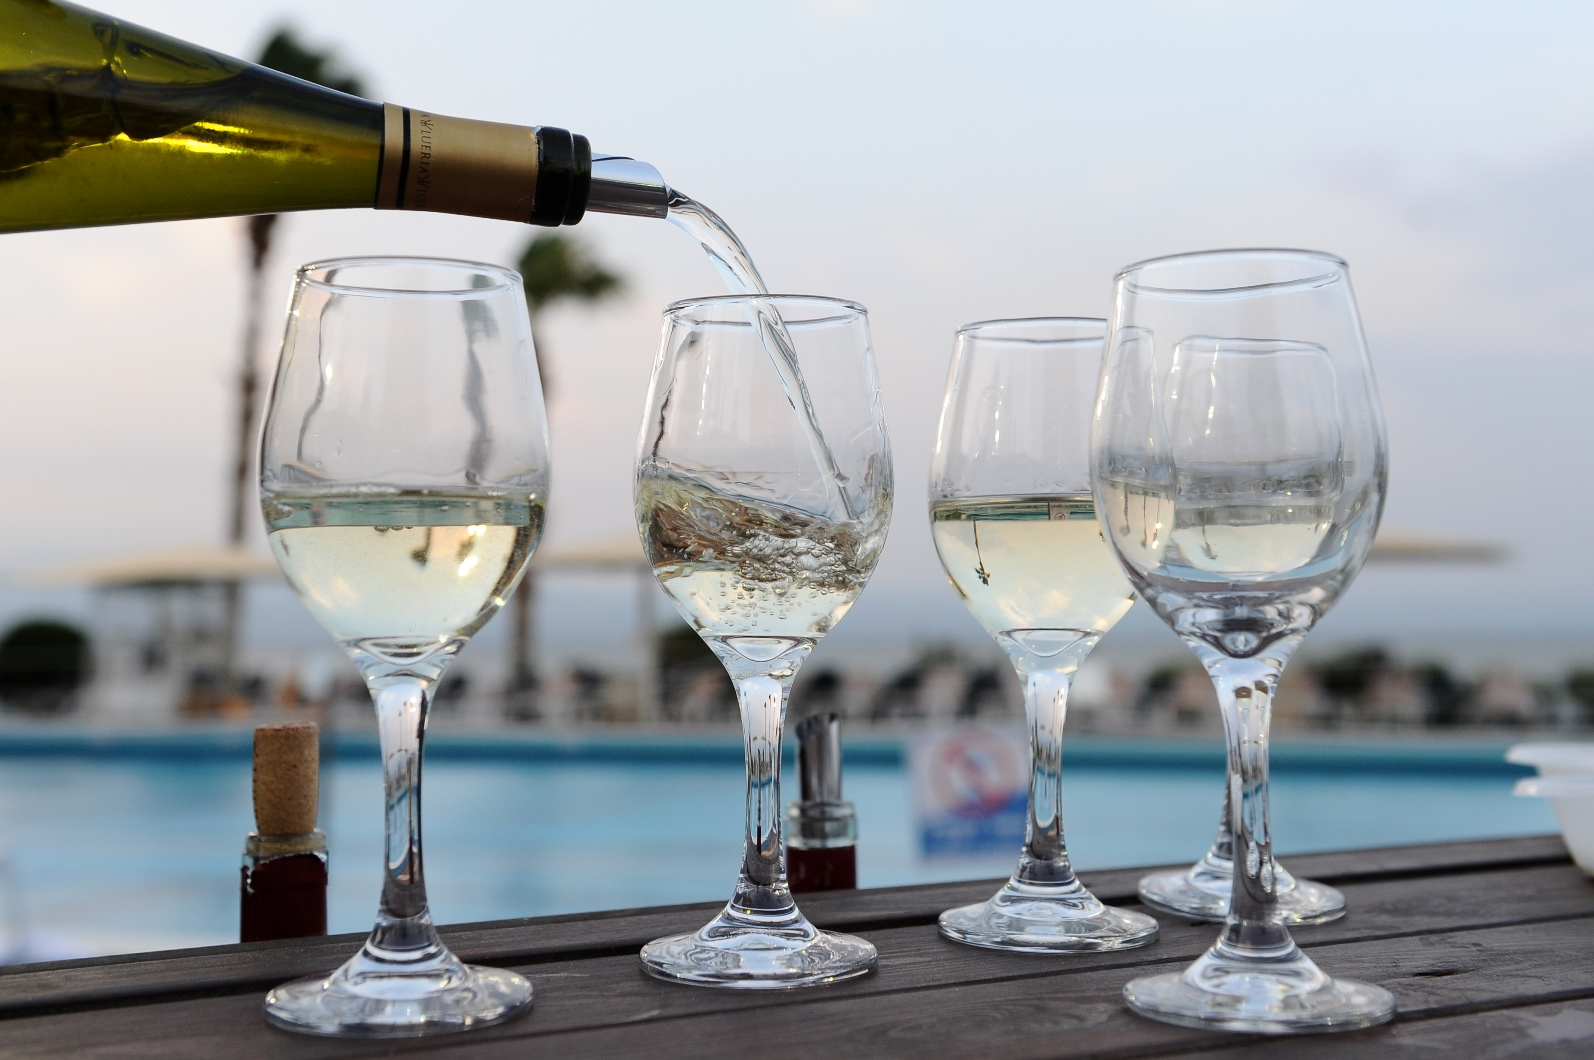 White wines being poured in the northern Israeli city of Tiberias. Photo by Mendy Hechtman/FLASH90